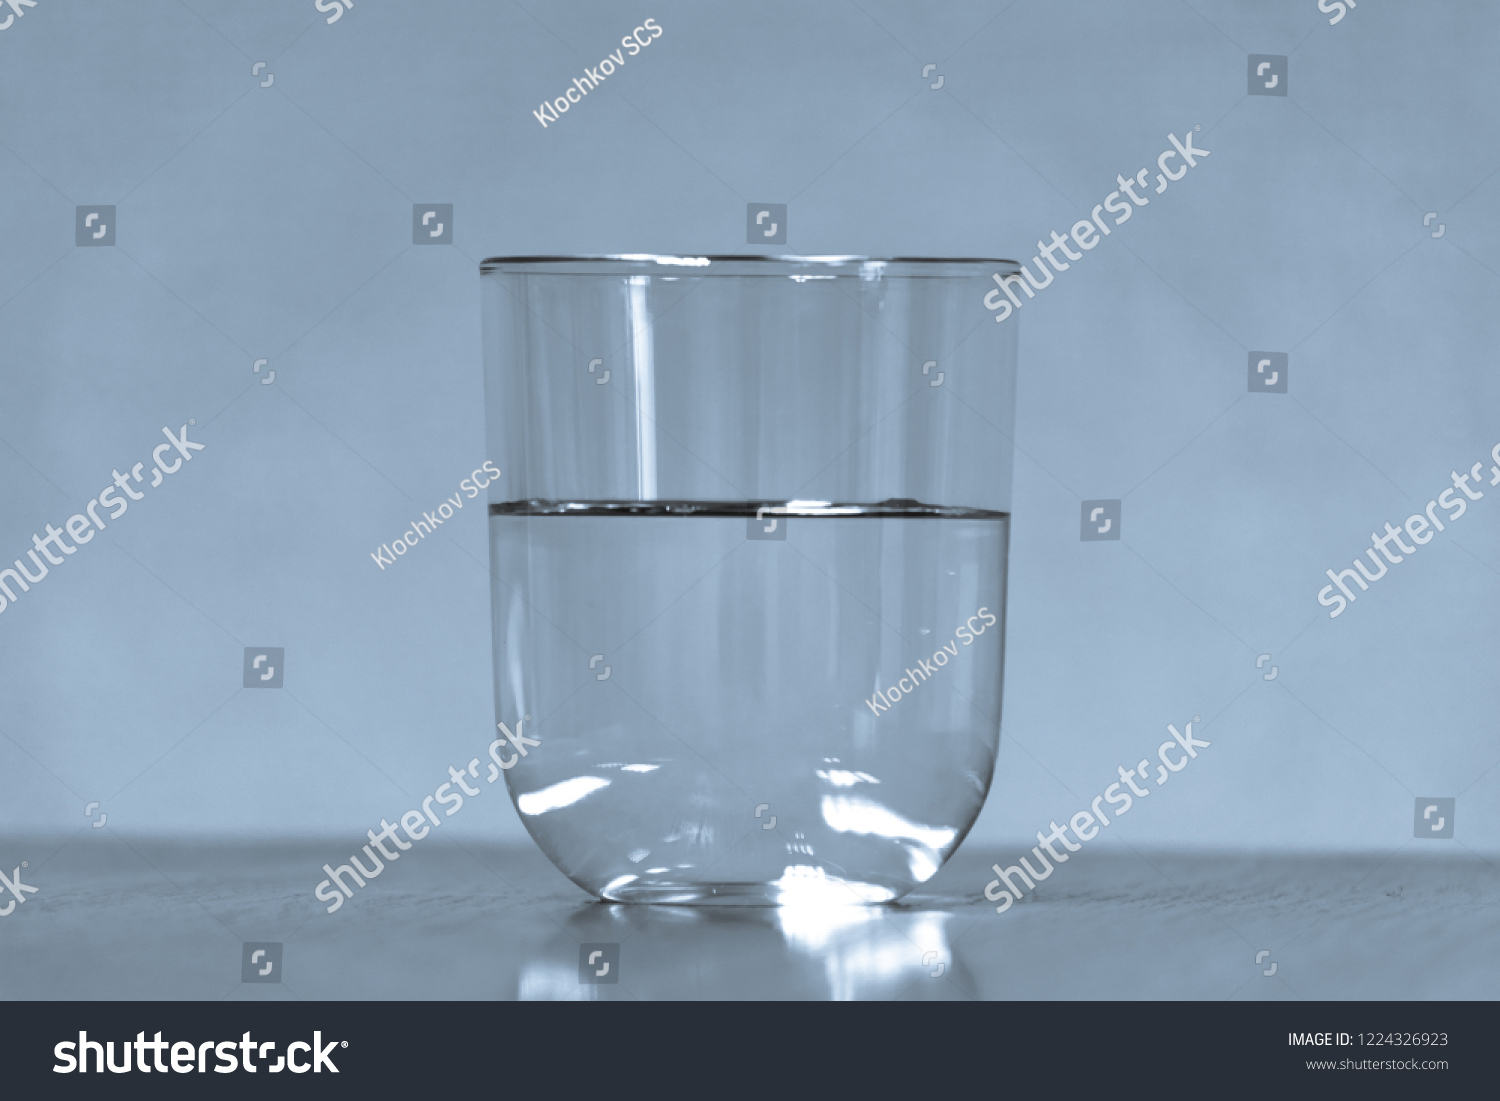 Glass with liquid on a wooden table